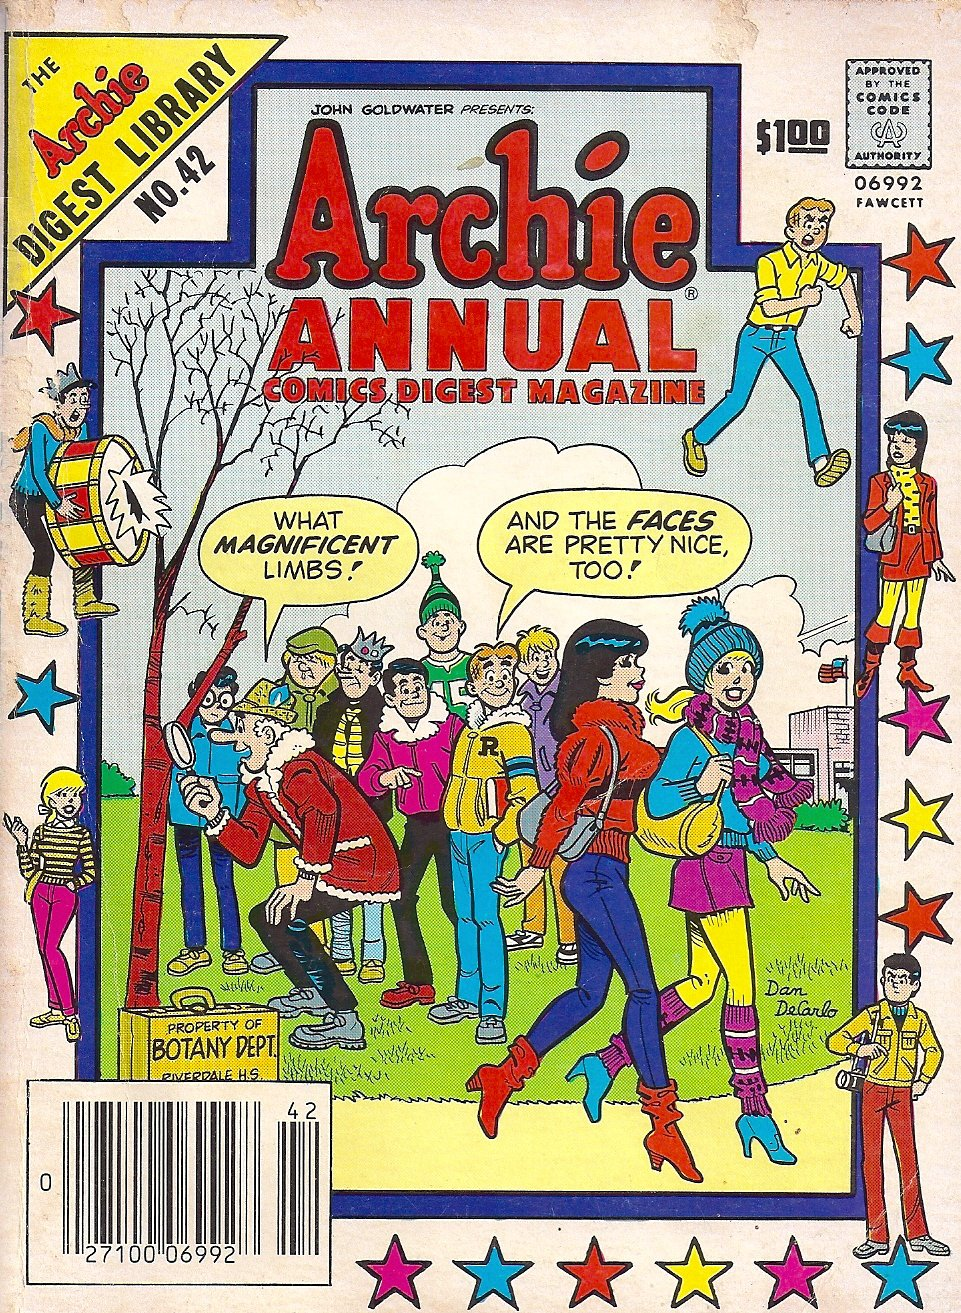 Archie Annual Comics Digest Magazine, Volume 42, 1983 Edition [The Archie Digest Library, 132 Pages], Goldwater, John